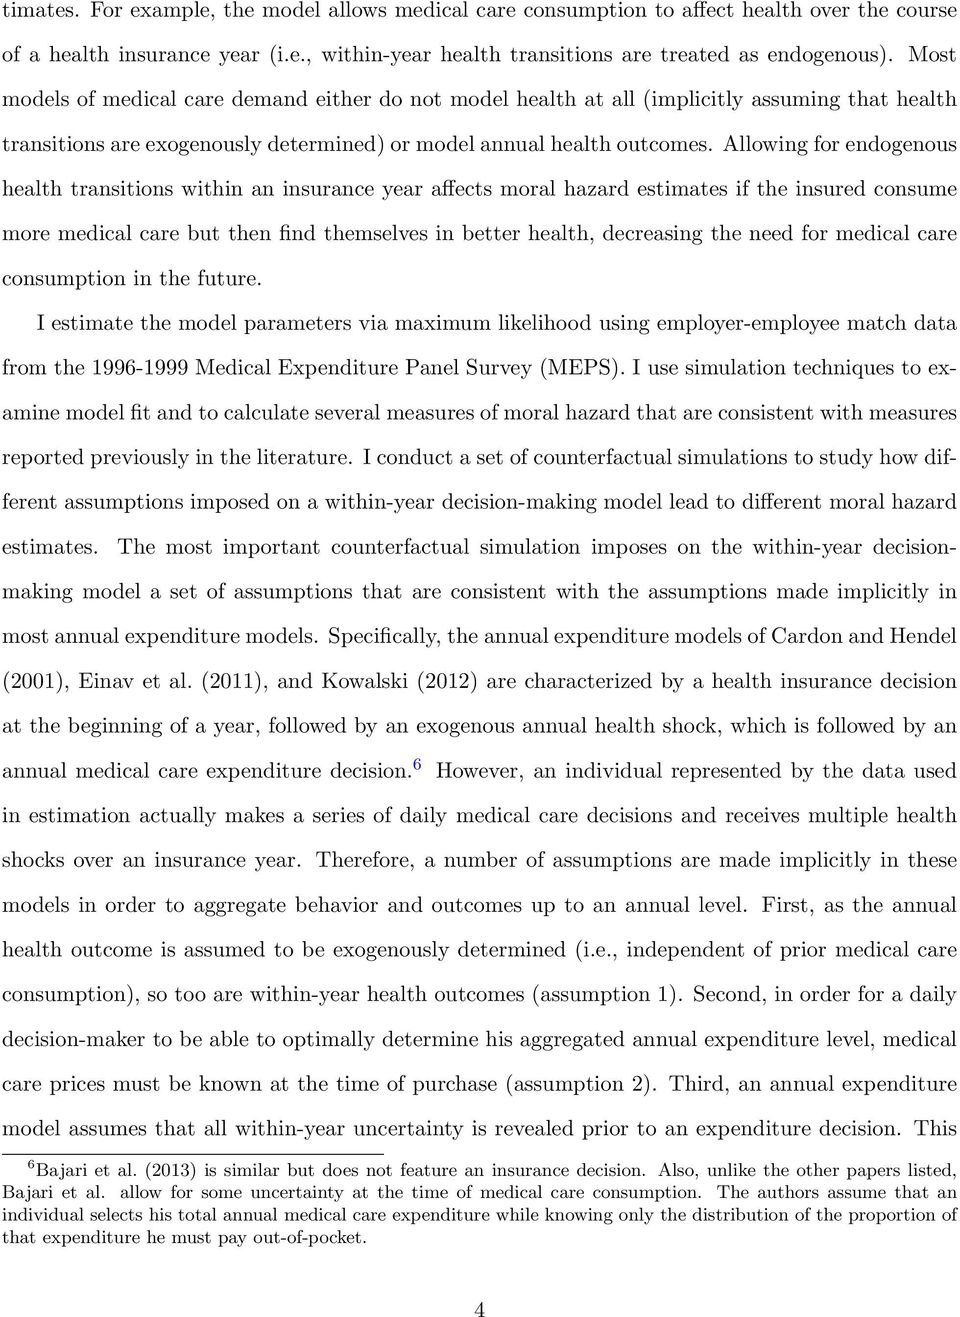 Allowing for endogenous health transitions within an insurance year affects moral hazard estimates if the insured consume more medical care but then find themselves in better health, decreasing the